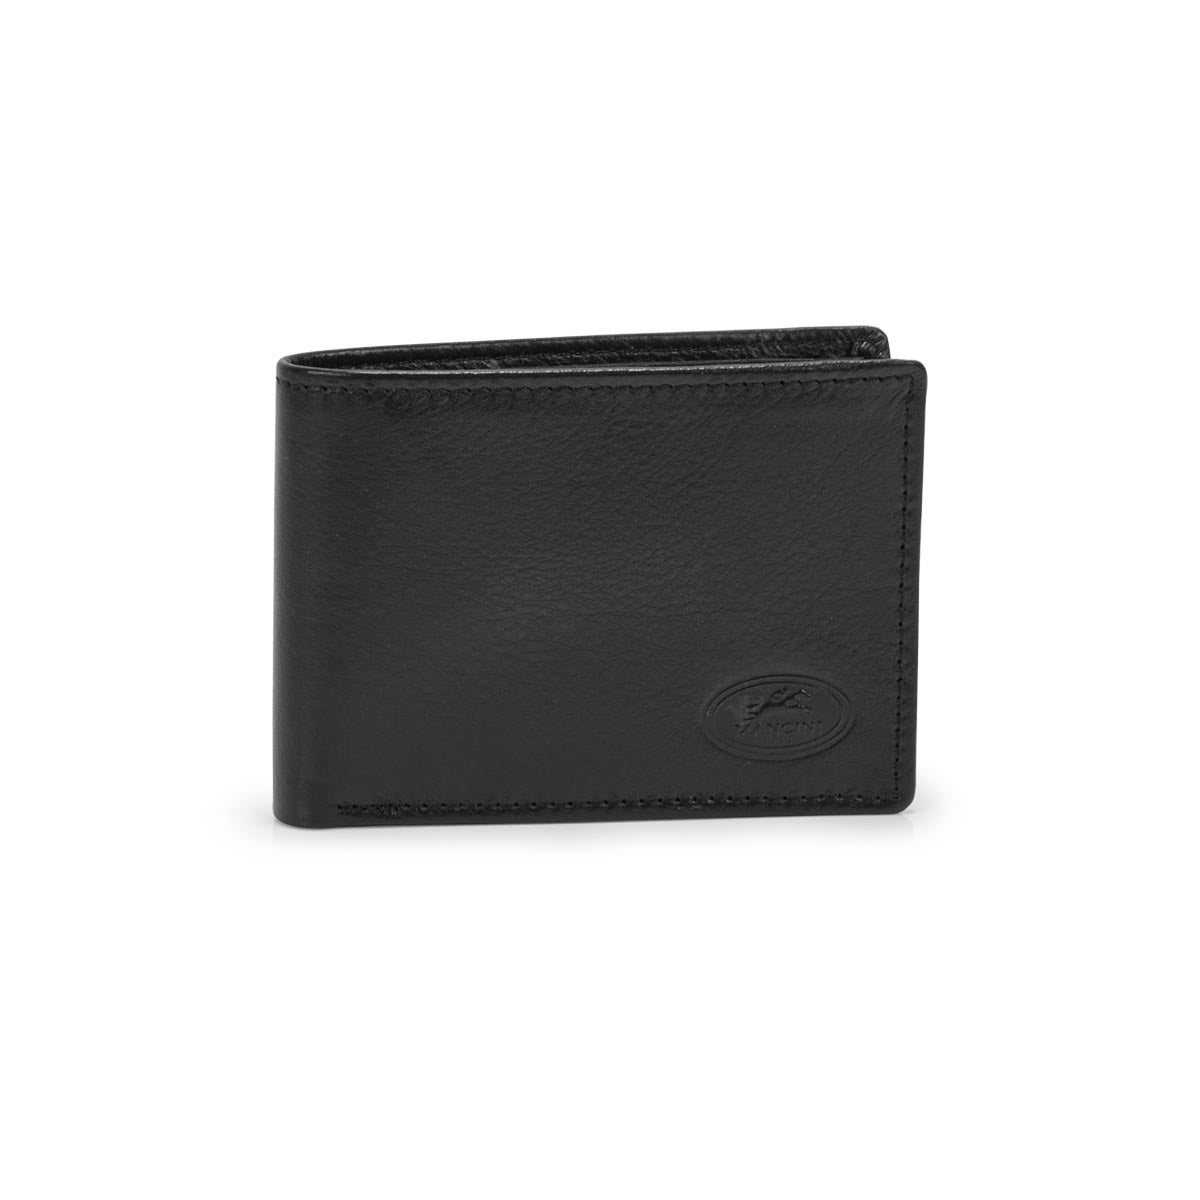 Men's CLASSIC black RFID secure wallet